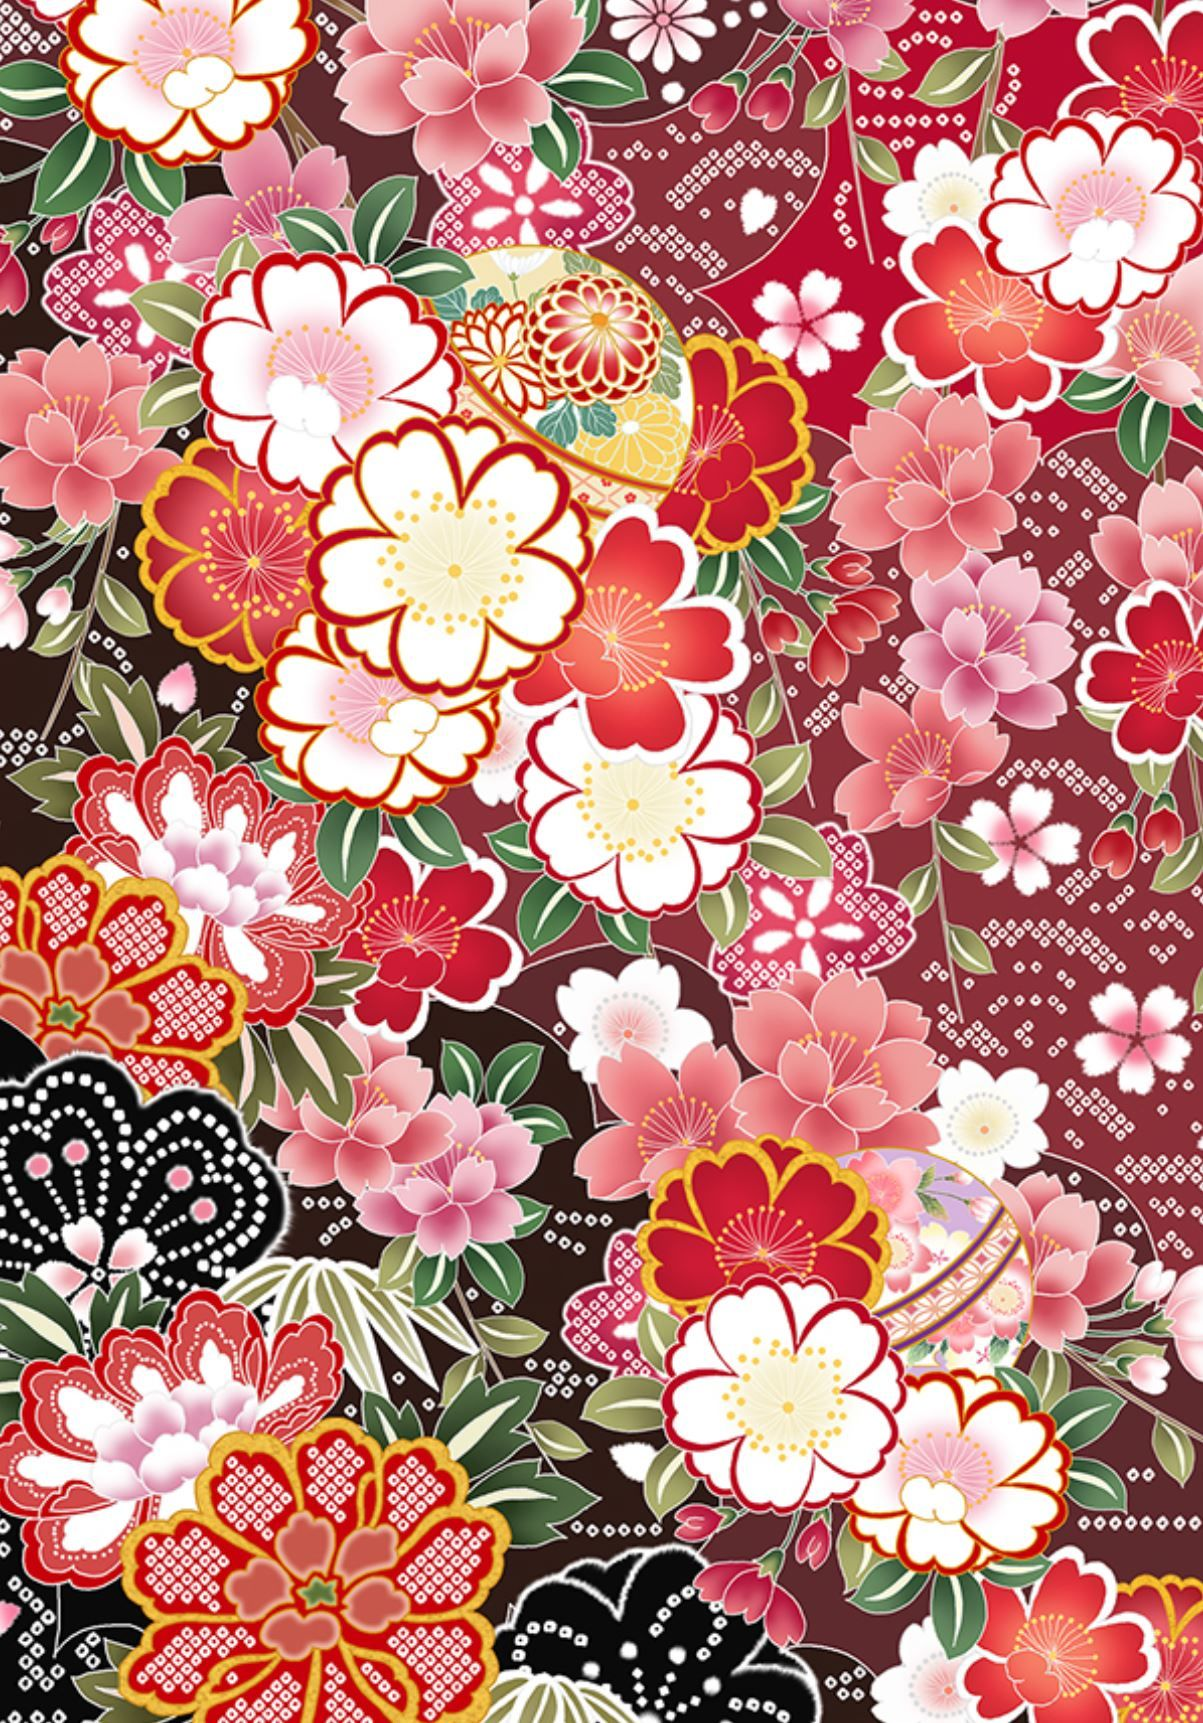 Cherry Blossoms Patterns Origami Paper: Perfect for Small Projects ...   1723x1203